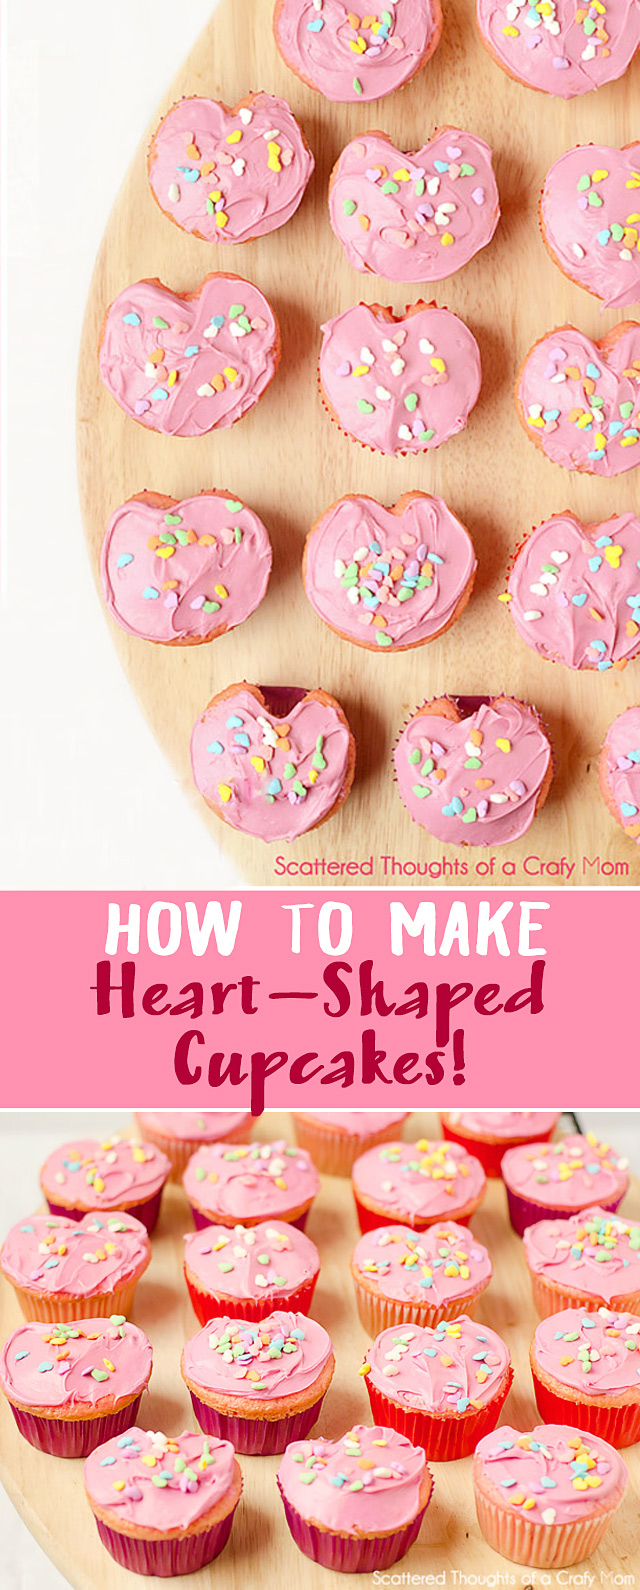 How to make Heart Shaped Cupcakes.  The perfect treat for Valentines Day or birthdays!